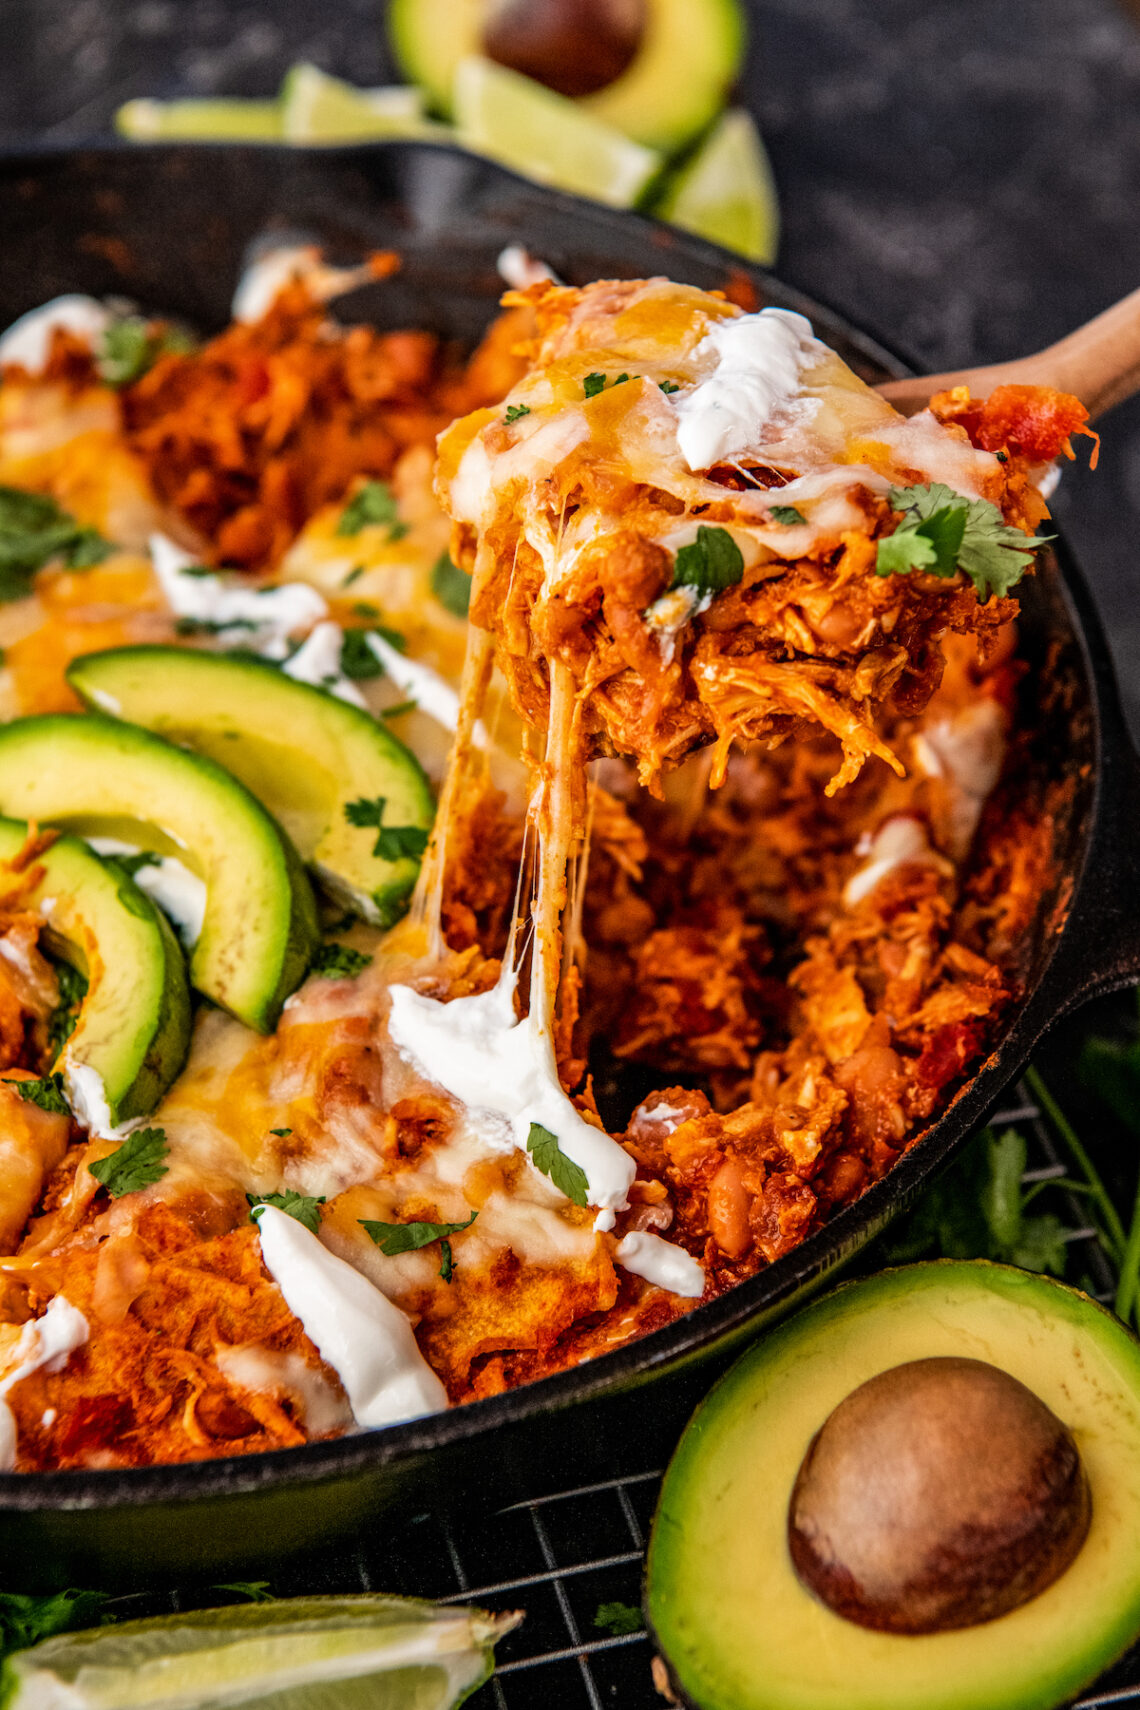 A large spoon is scooping out a portion of chicken enchiladas from a black skillet.